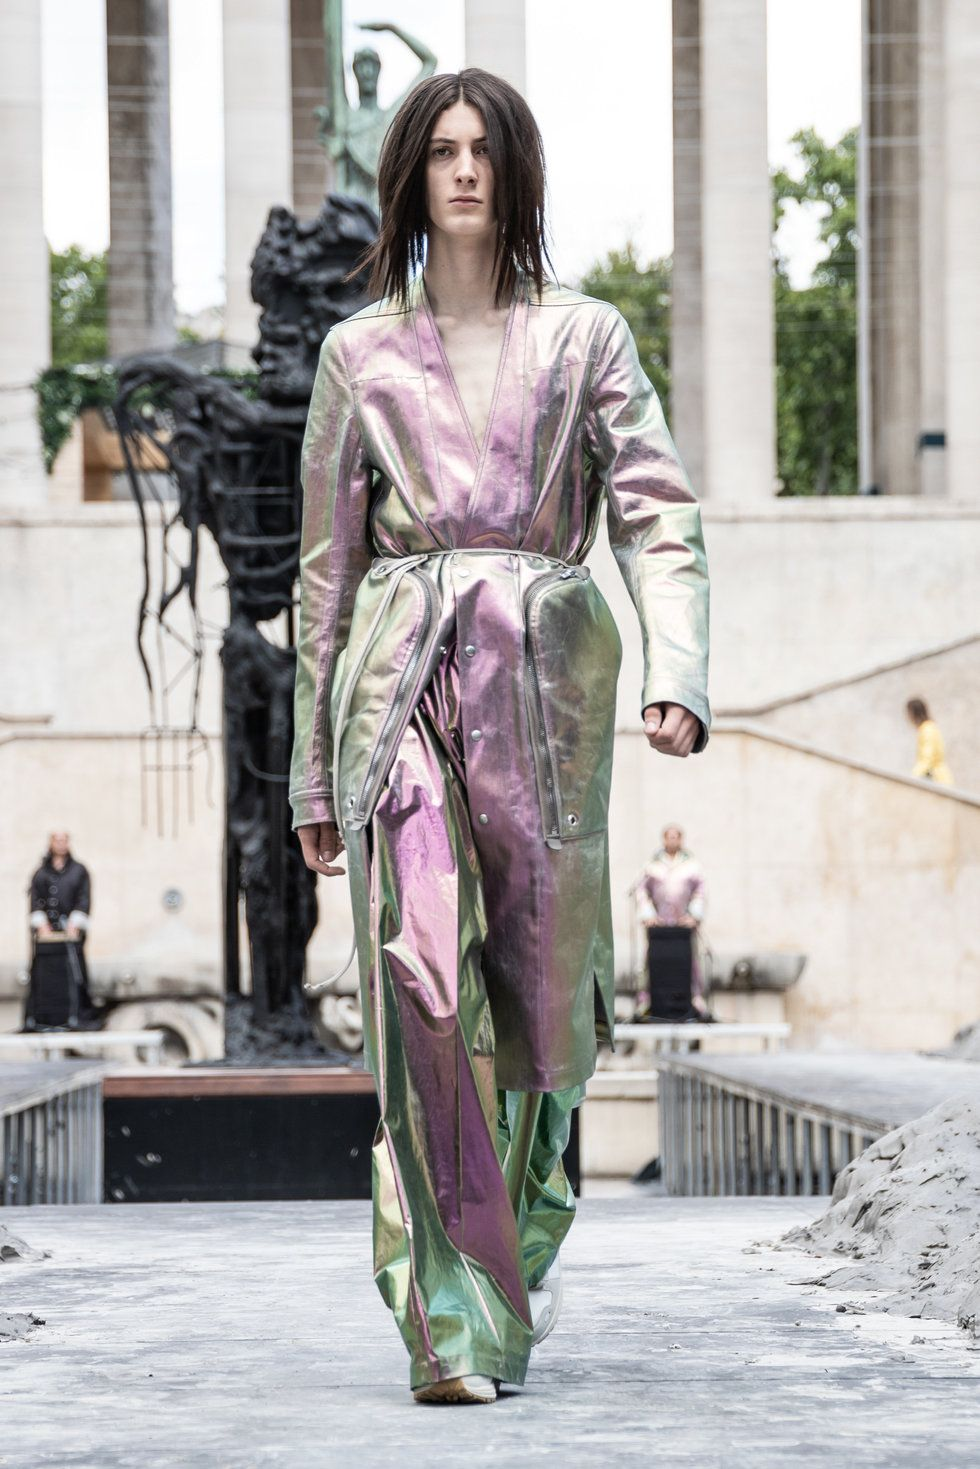 Louis Vuitton, Y/Project and Menswear Trends From Spring 2020 - PAPER